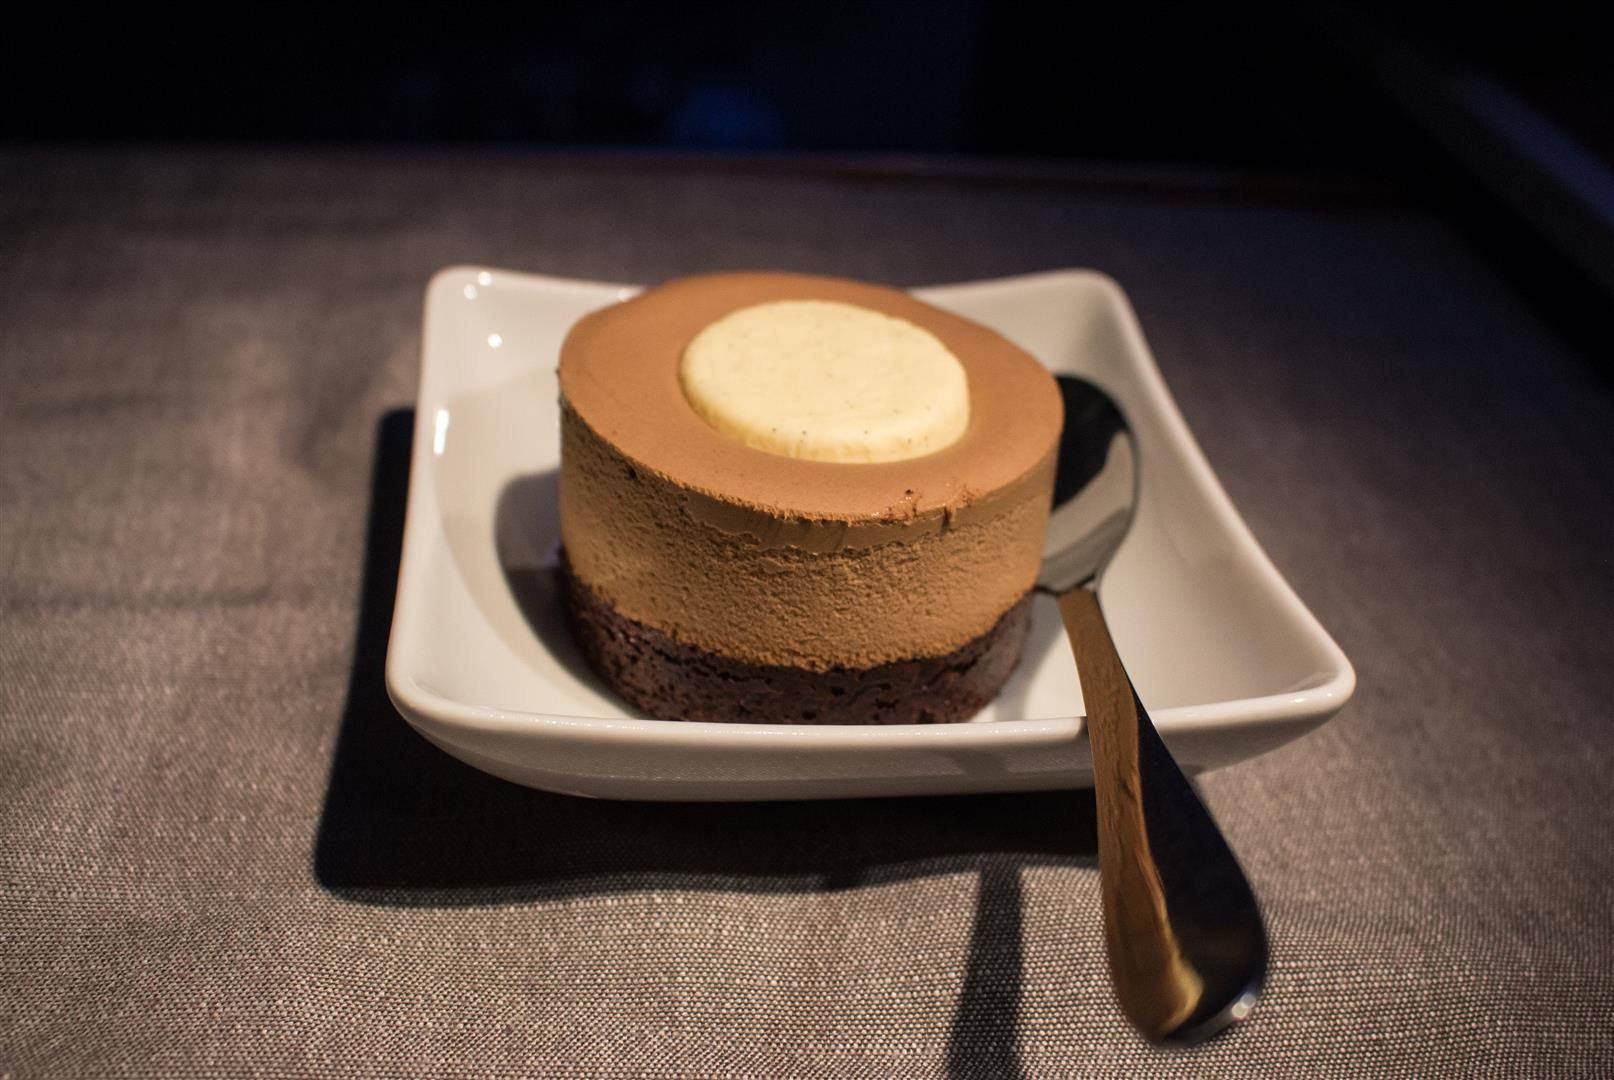 The Chocolate Mousse - was hoping for a bit more fluff...